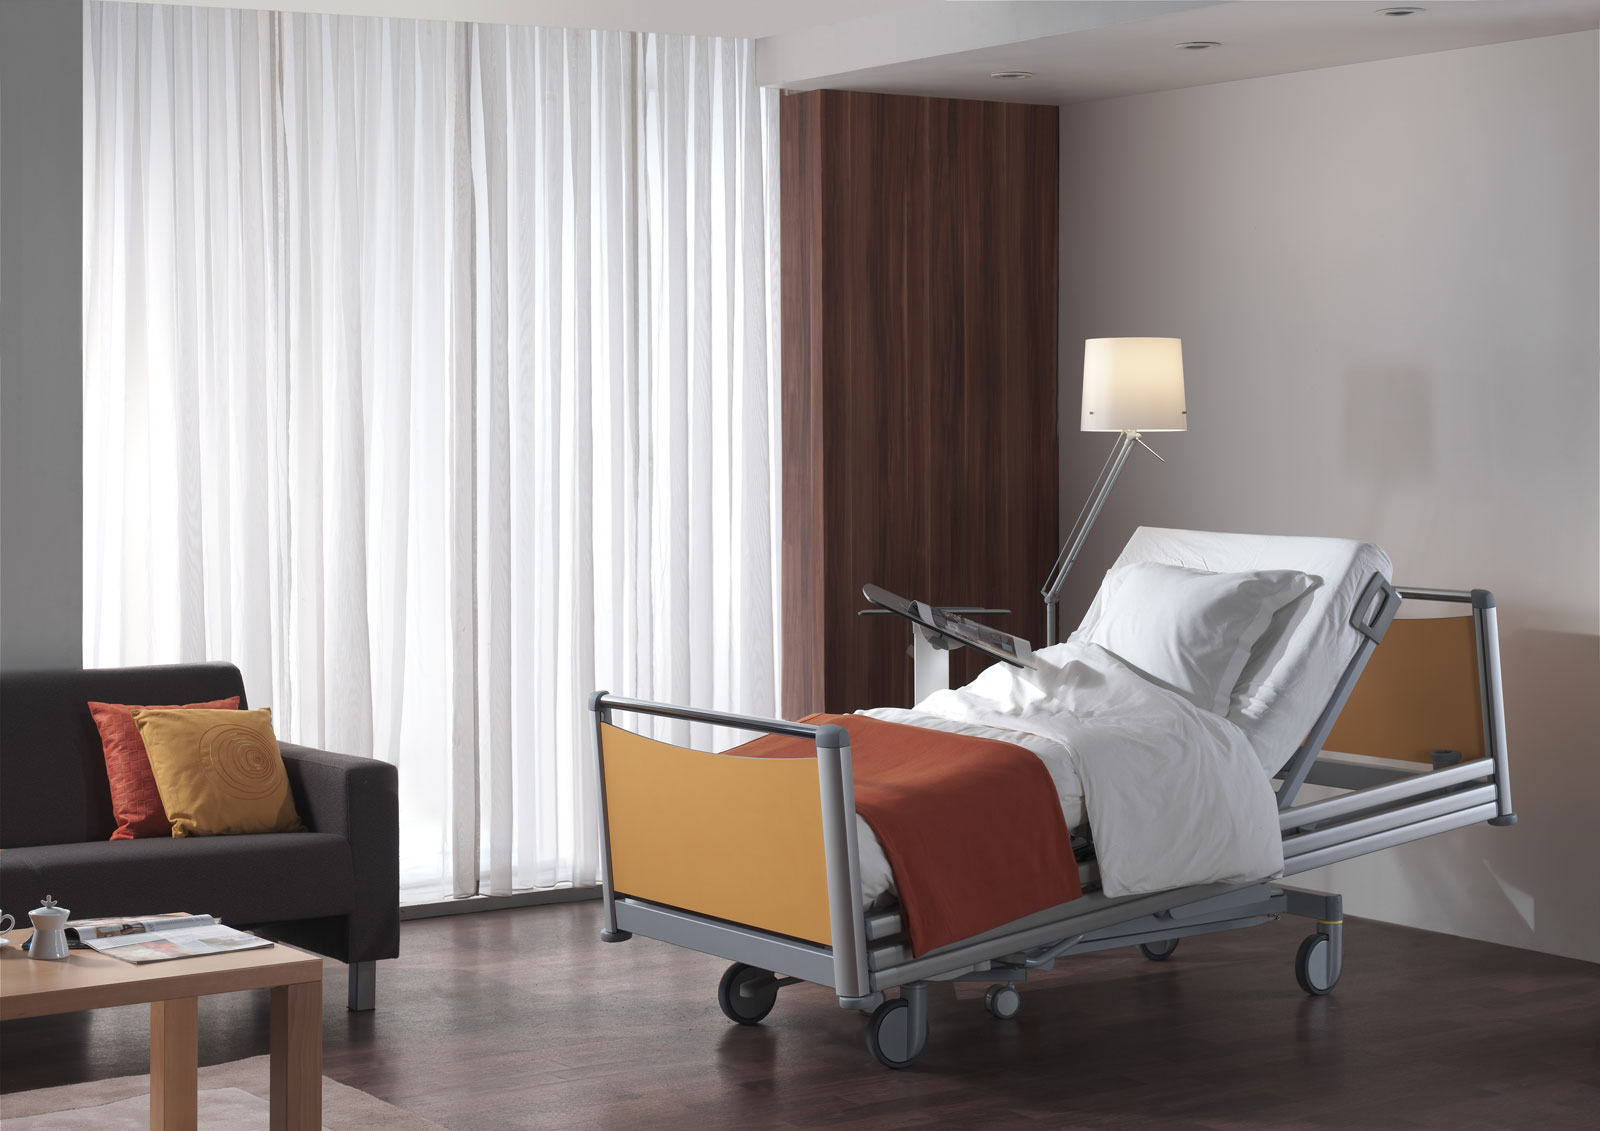 Vico Hospital Bed